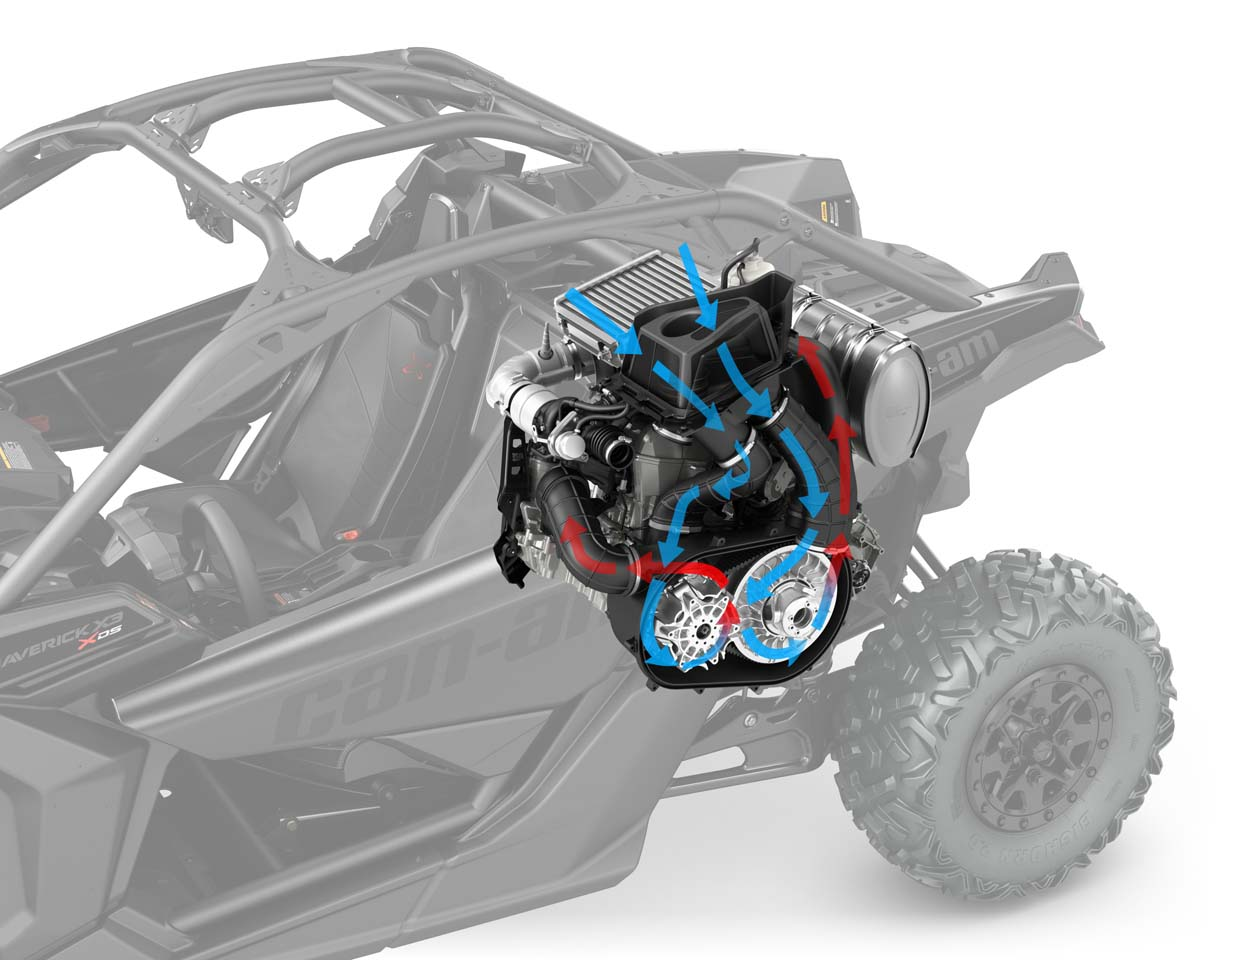 Brp Sets The Standard In Performance Side By Side Vehicles